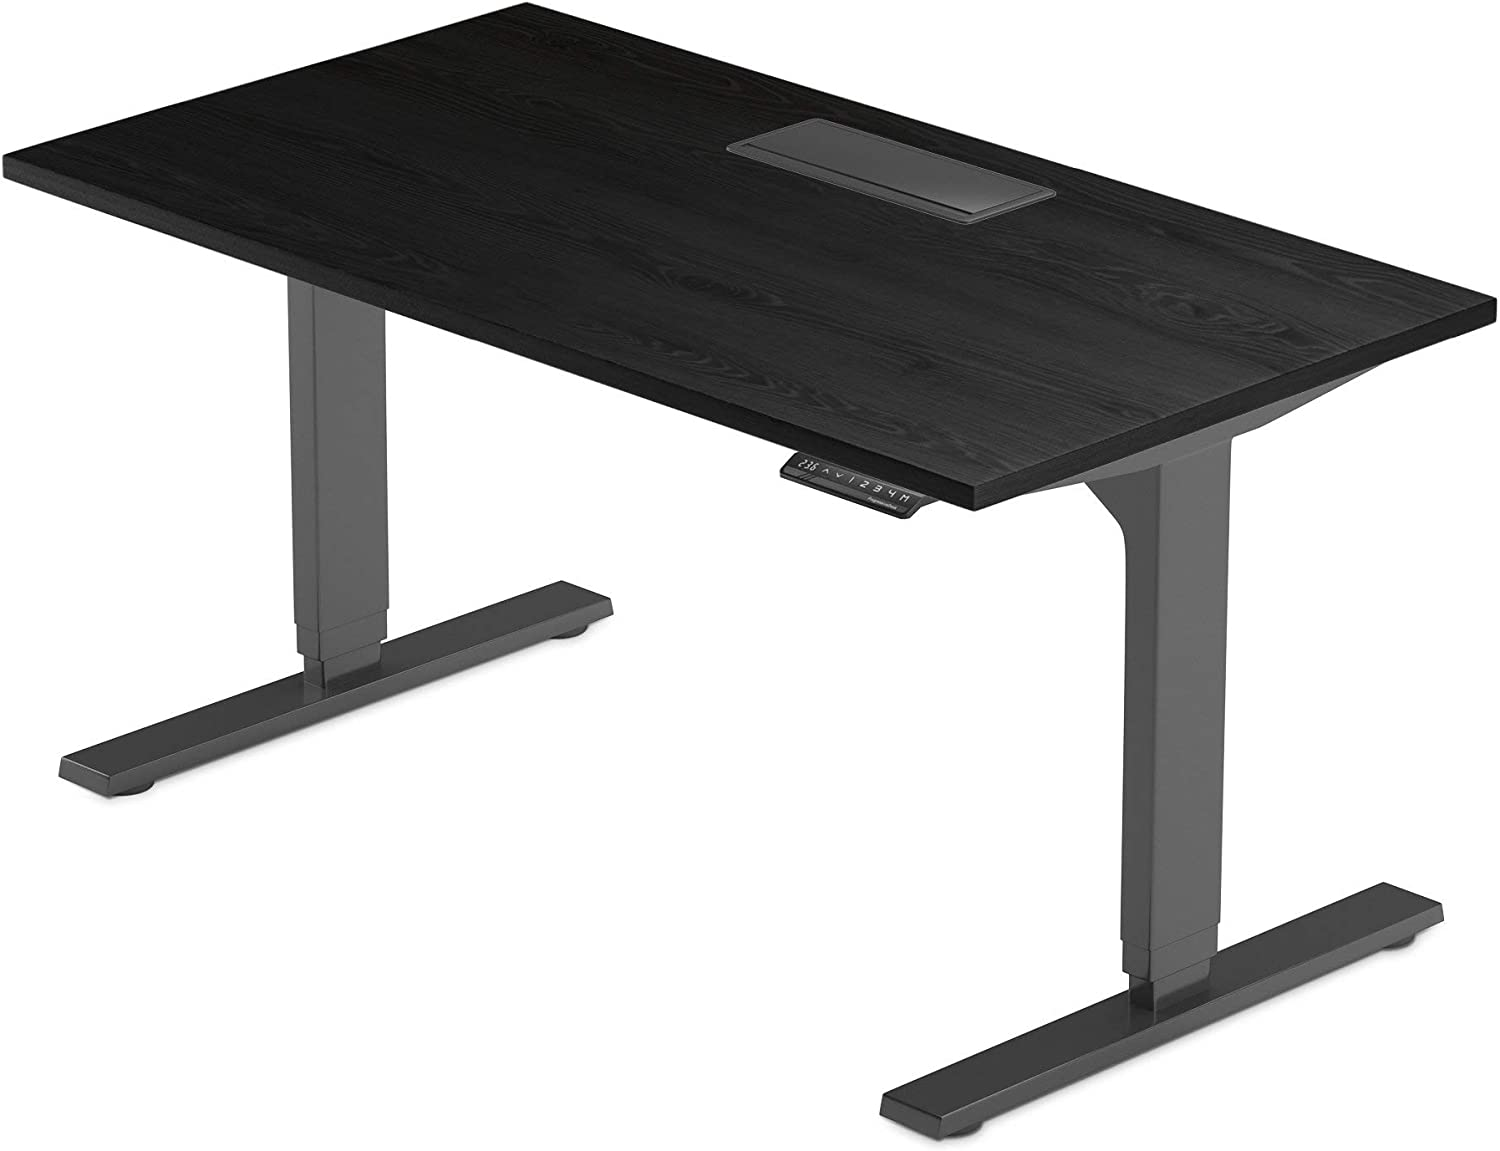 "Progressive Desk 72 inch Standing Desk, Large Electric Stand up Office Desk, Compatible with Accessories, 72""x30"" - Solo Ryzer"